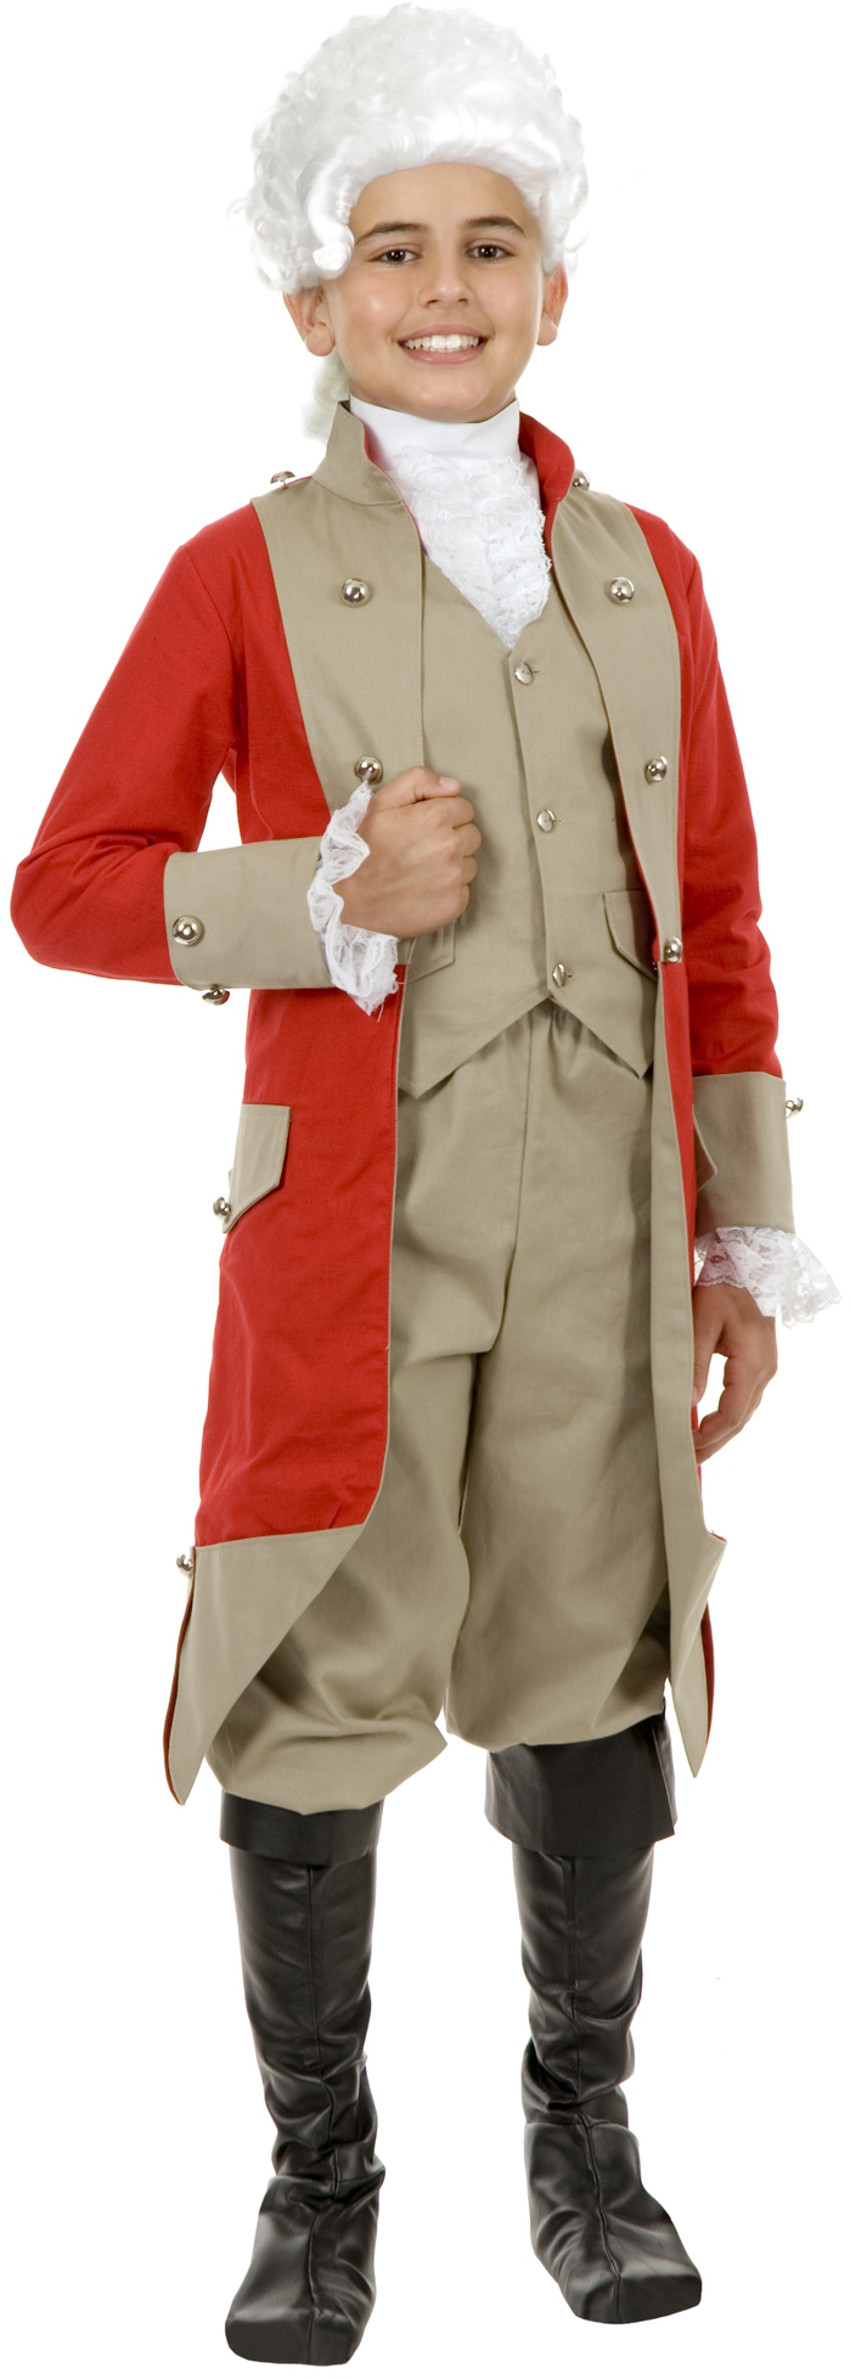 Child Boys British Red Coat Military Jacket Costume Accessory by Charades Costumes